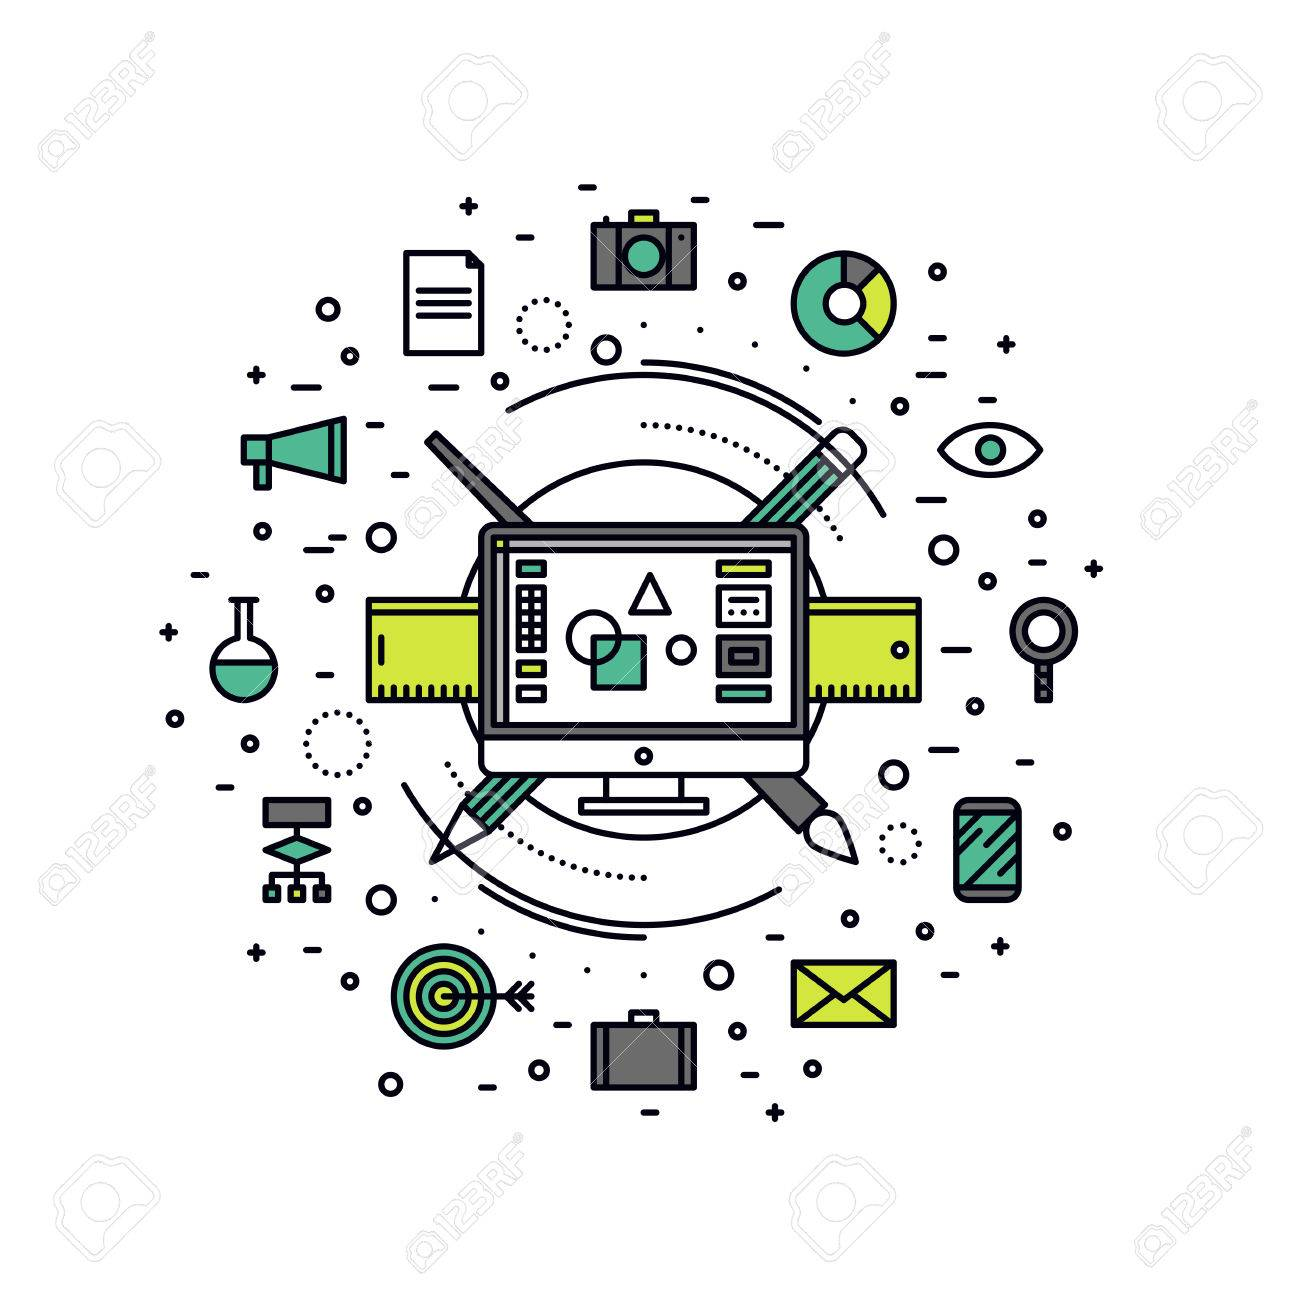 Thin line flat design of graphic designer essential equipment, computer design editor for creating web advertising and digital art. Modern vector illustration concept, isolated on white background. Stock Vector - 43550588